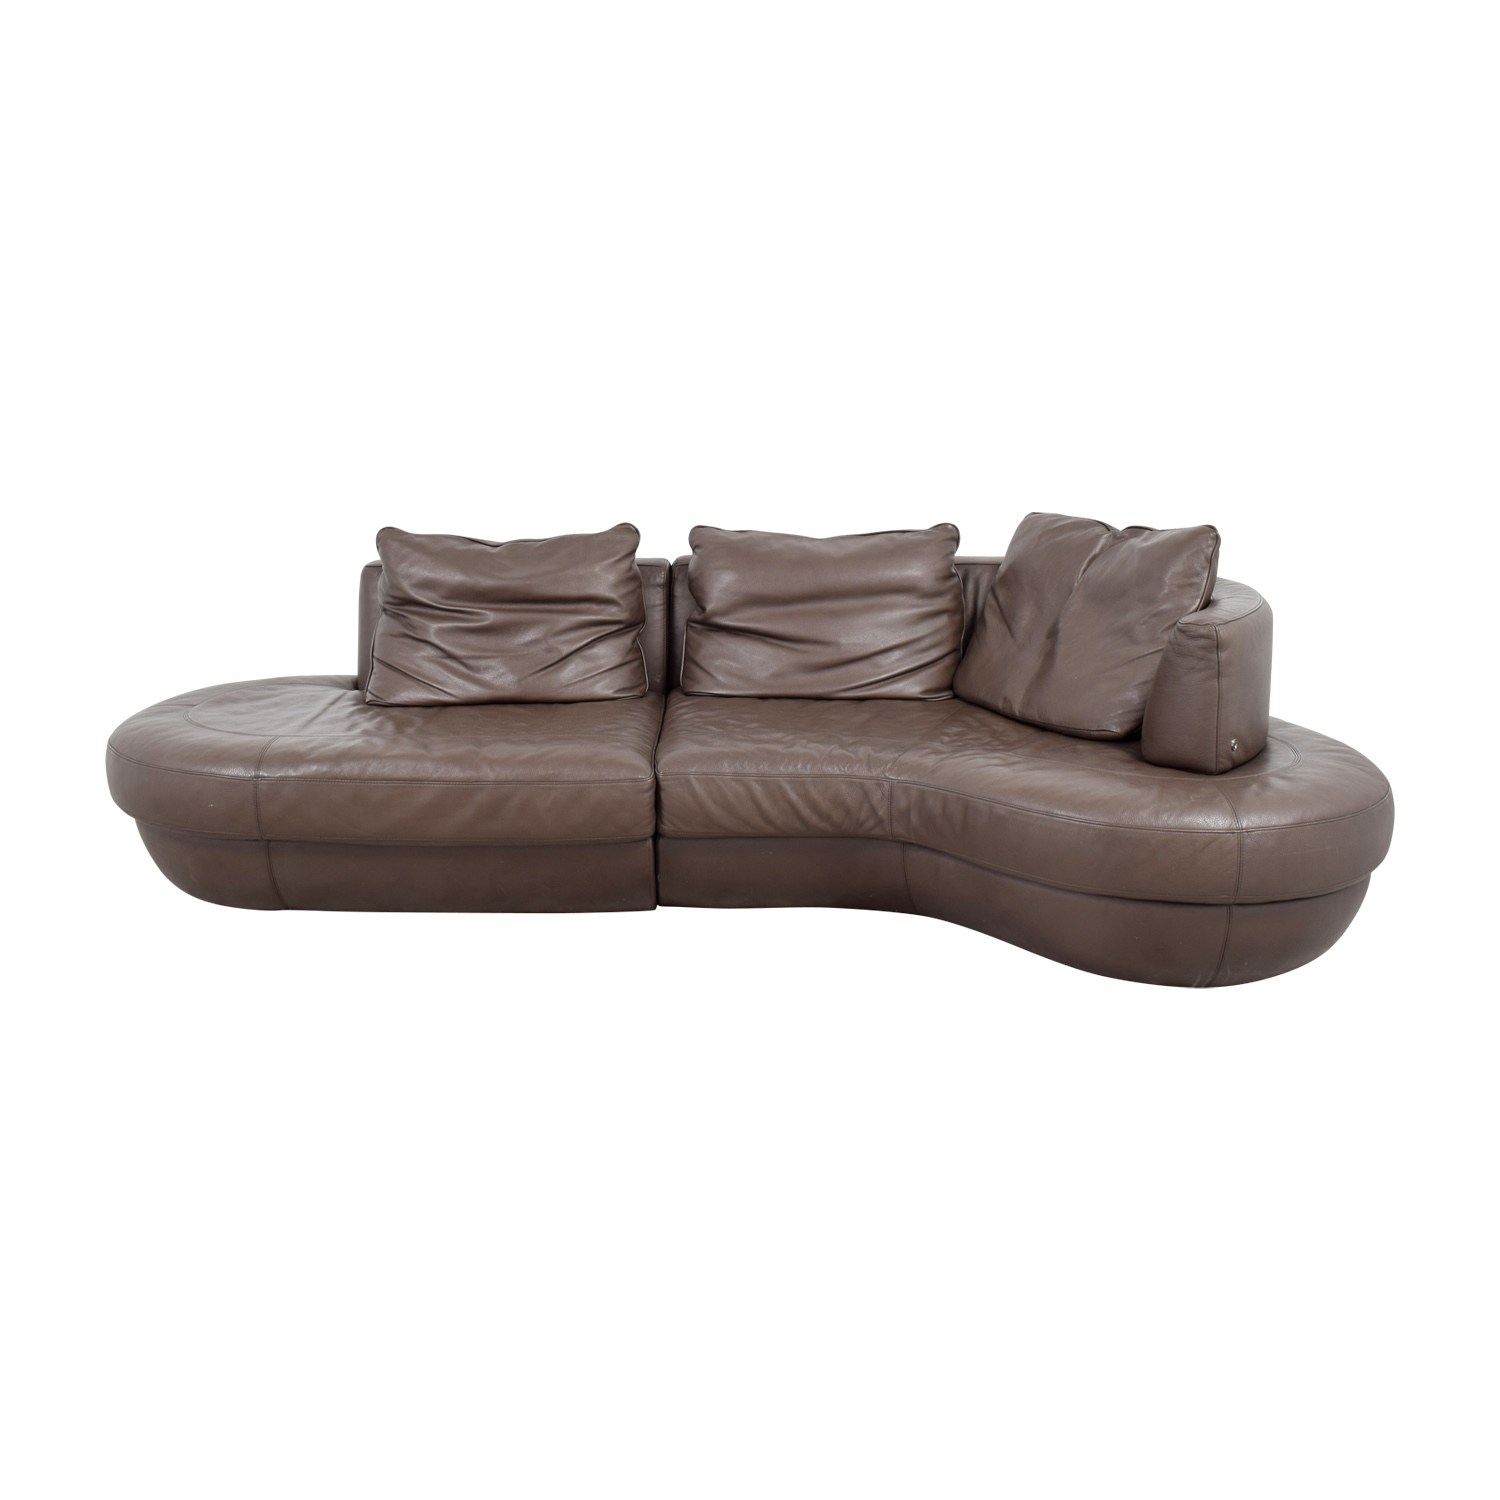 buy Natuzzi Rondo Brown Leather Curved Sectional Natuzzi